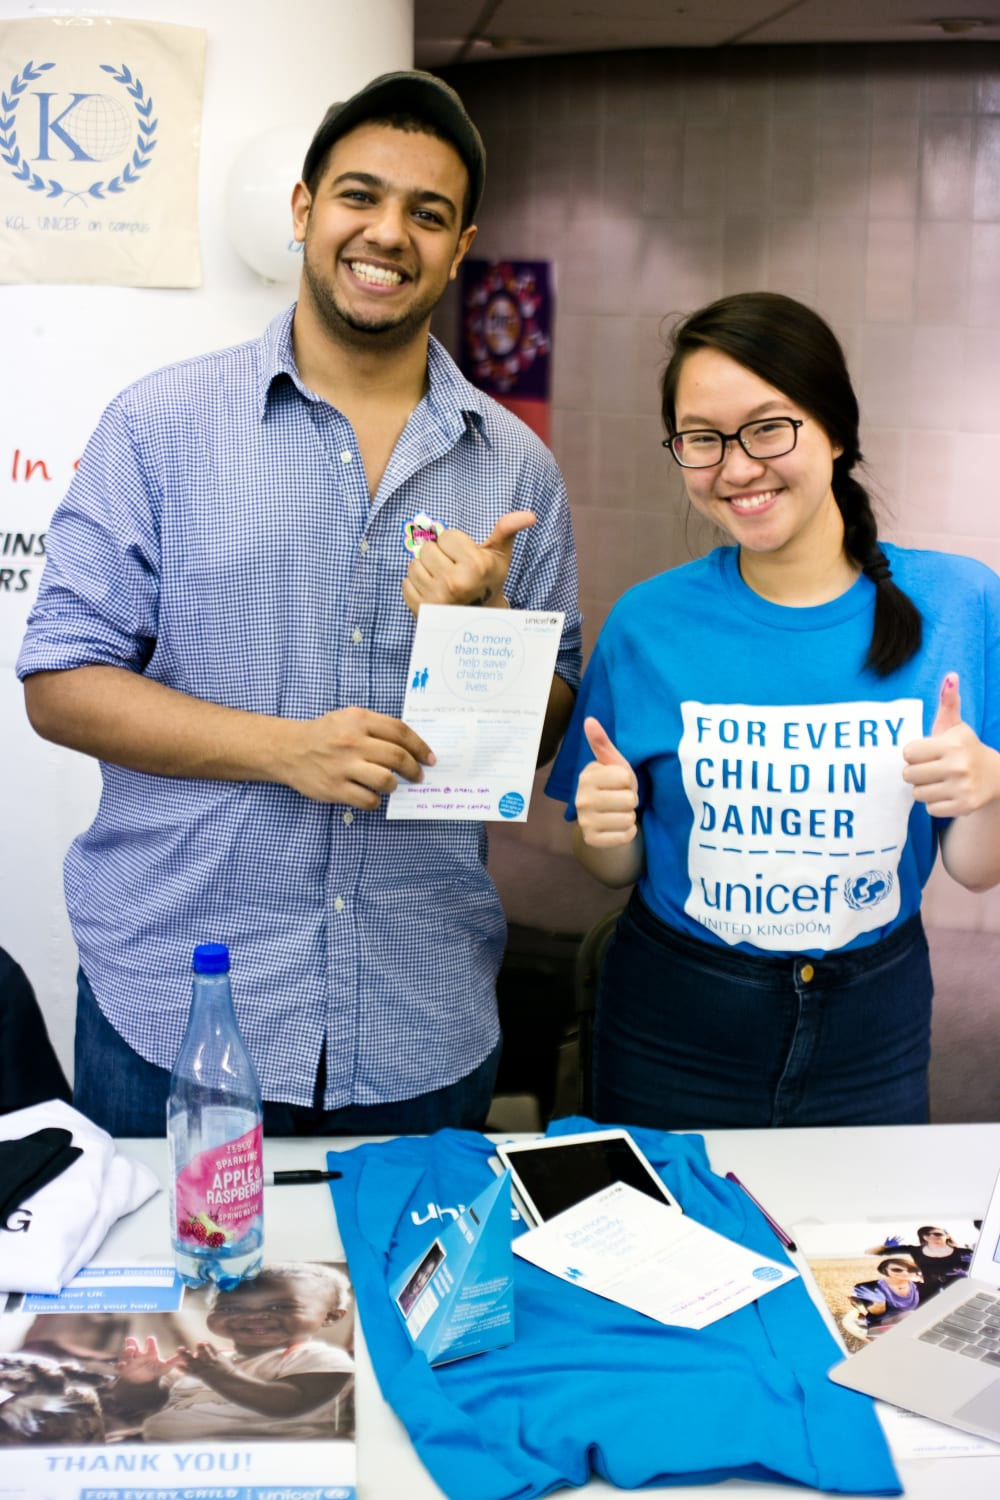 Volunteering providers at a stall